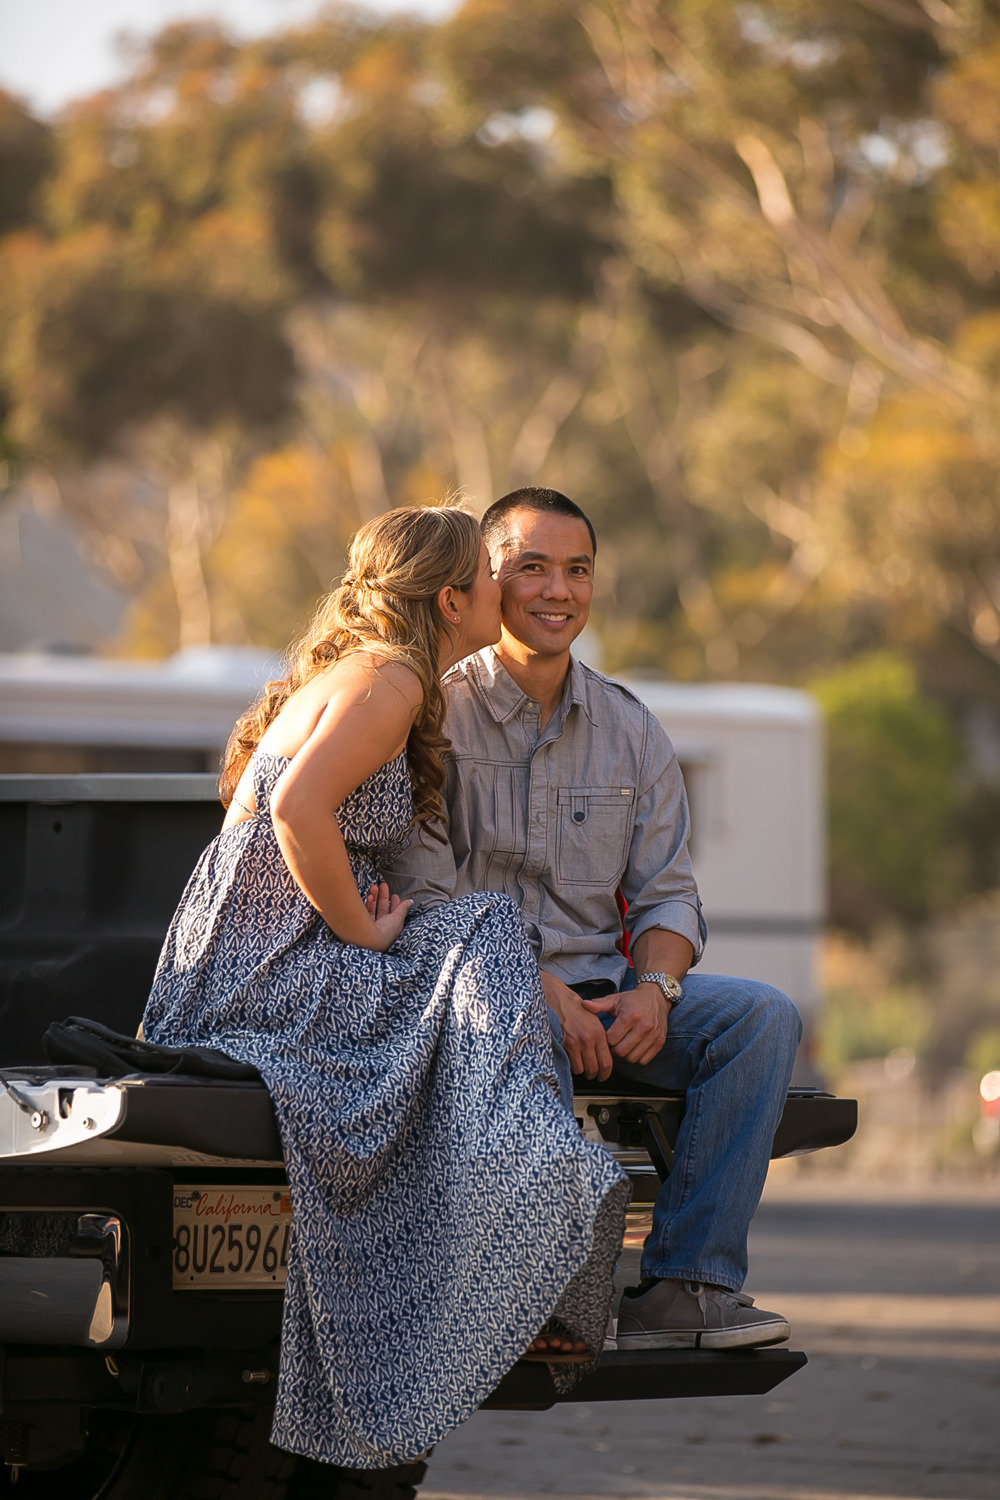 20131020_CHRIS_JEFF_MALIBU_BEACH_ENGAGEMENT_CHRIS_HOLT_PHOTOGRAPHY_001.jpg